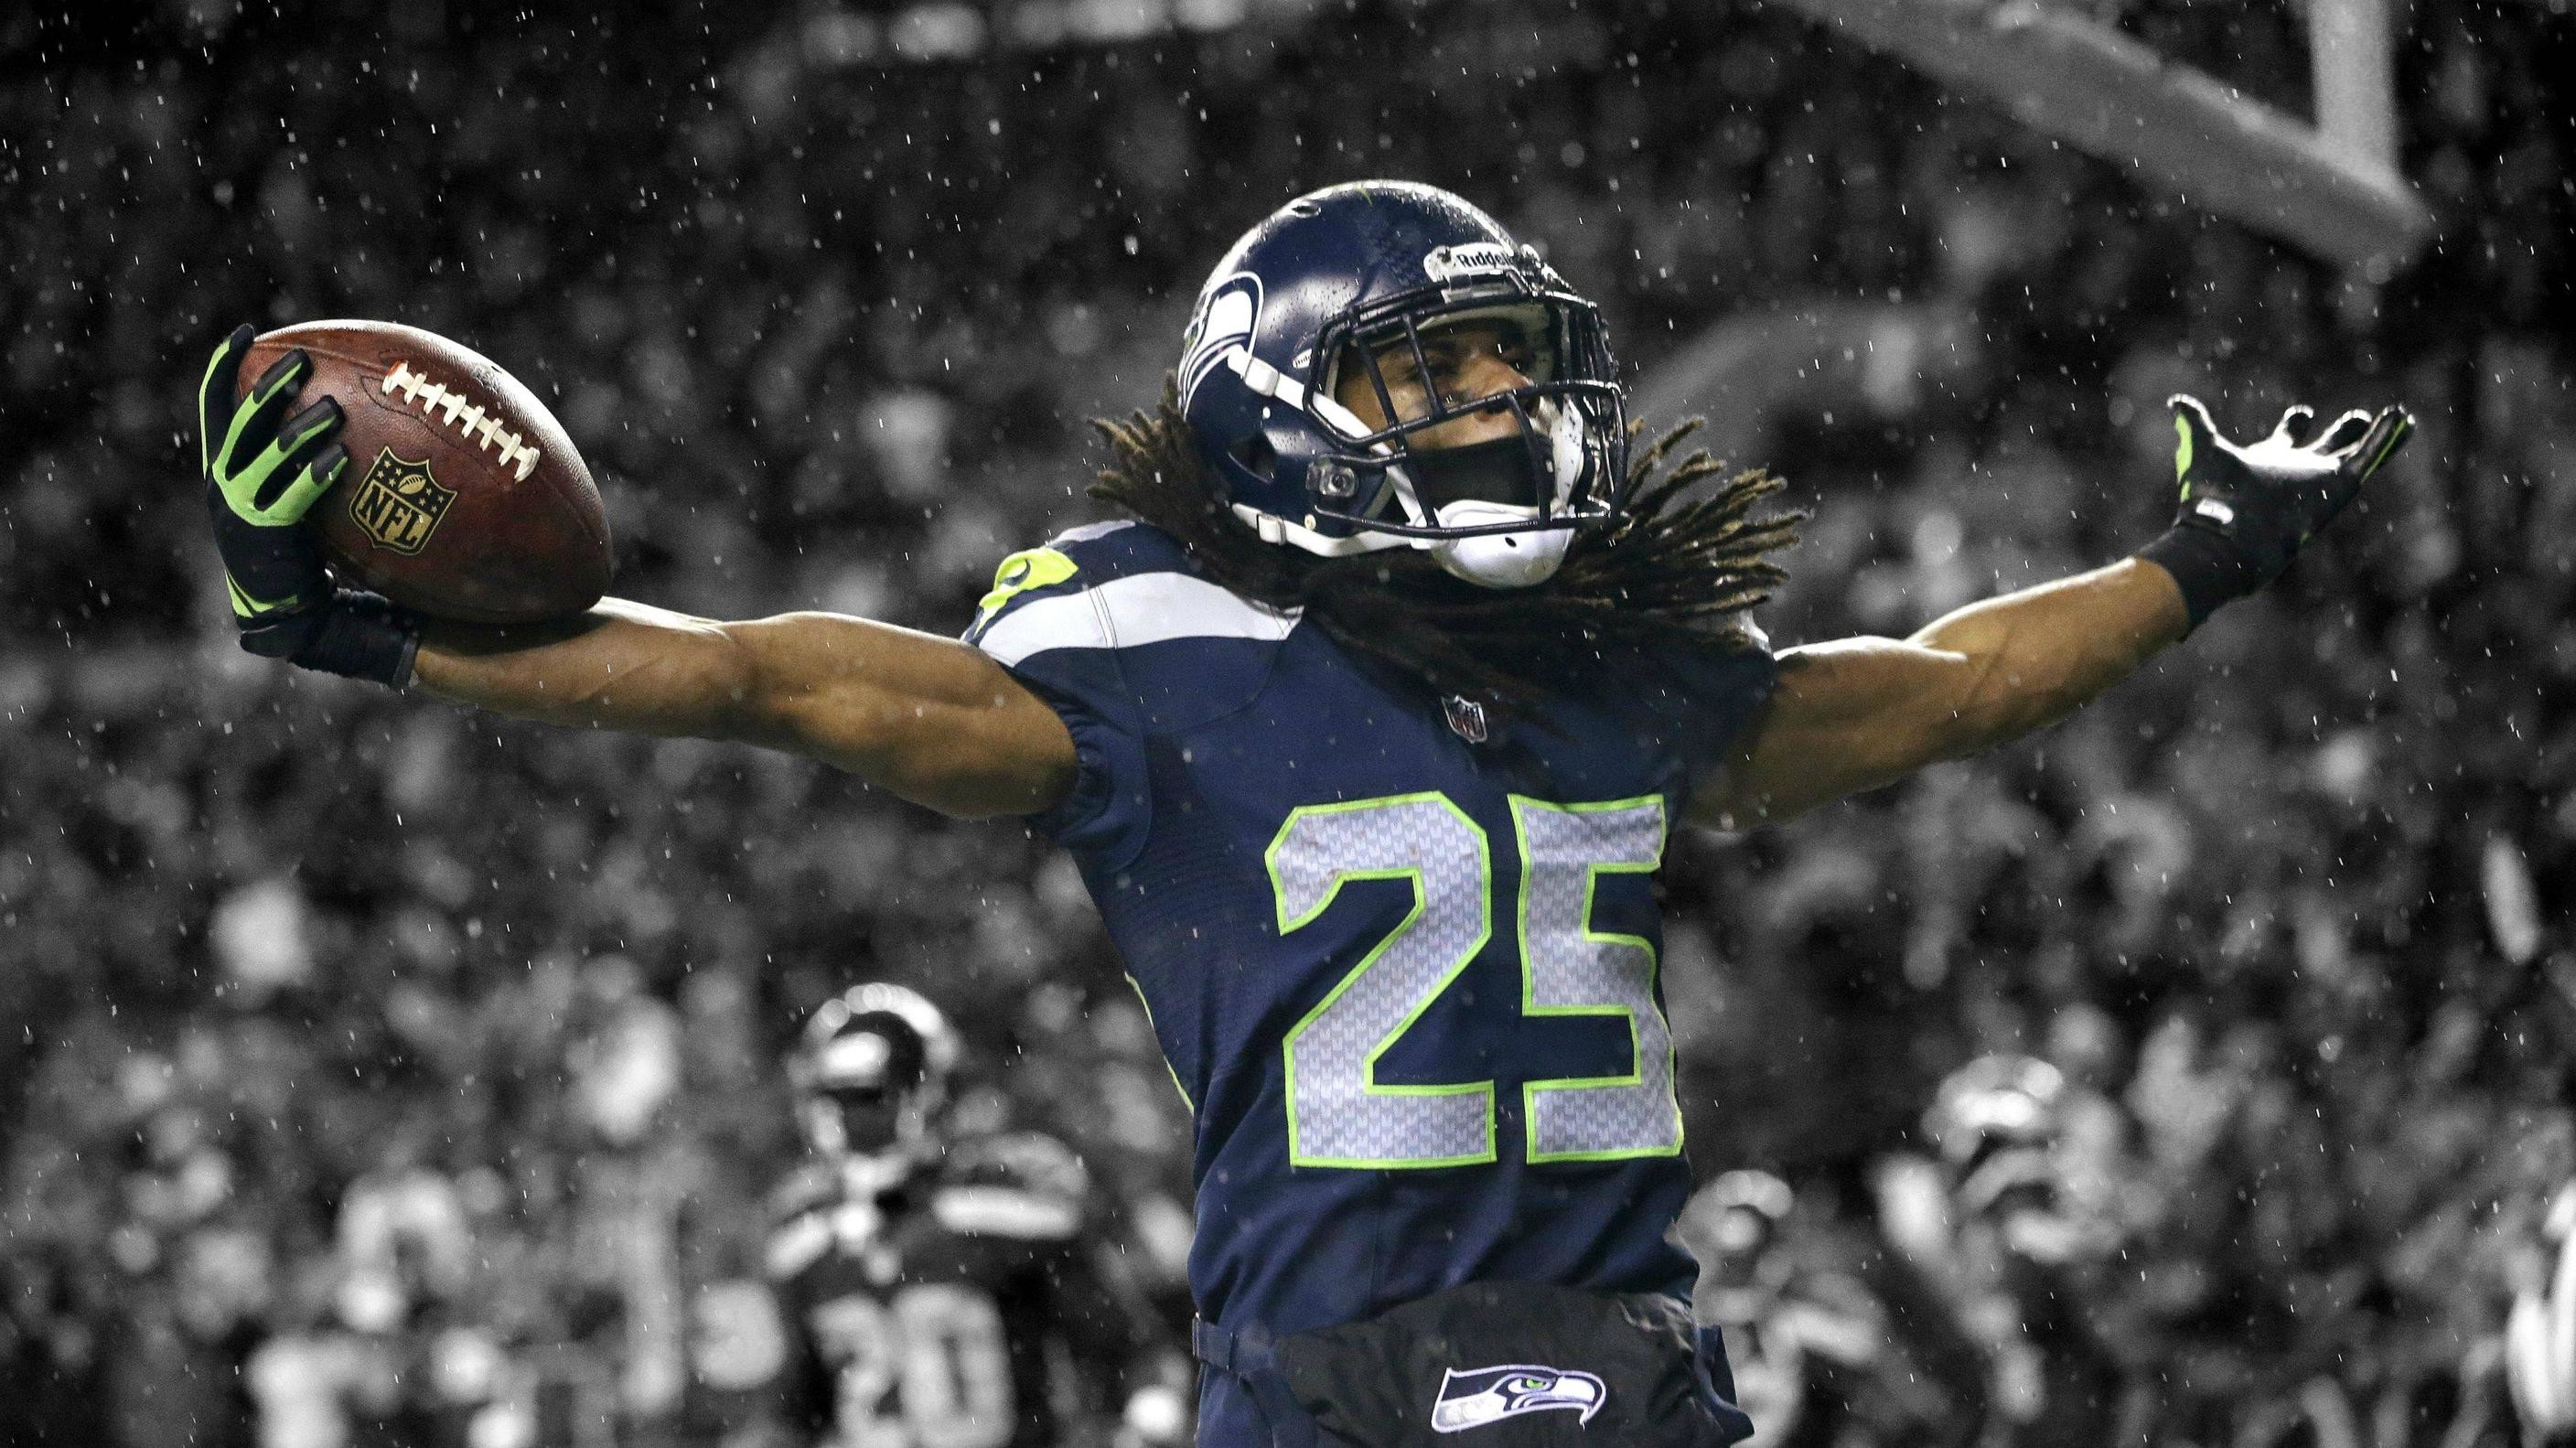 2816x1583 Richard-Sherman-Seahawks-Wallpaper-NFL-Backgrounds